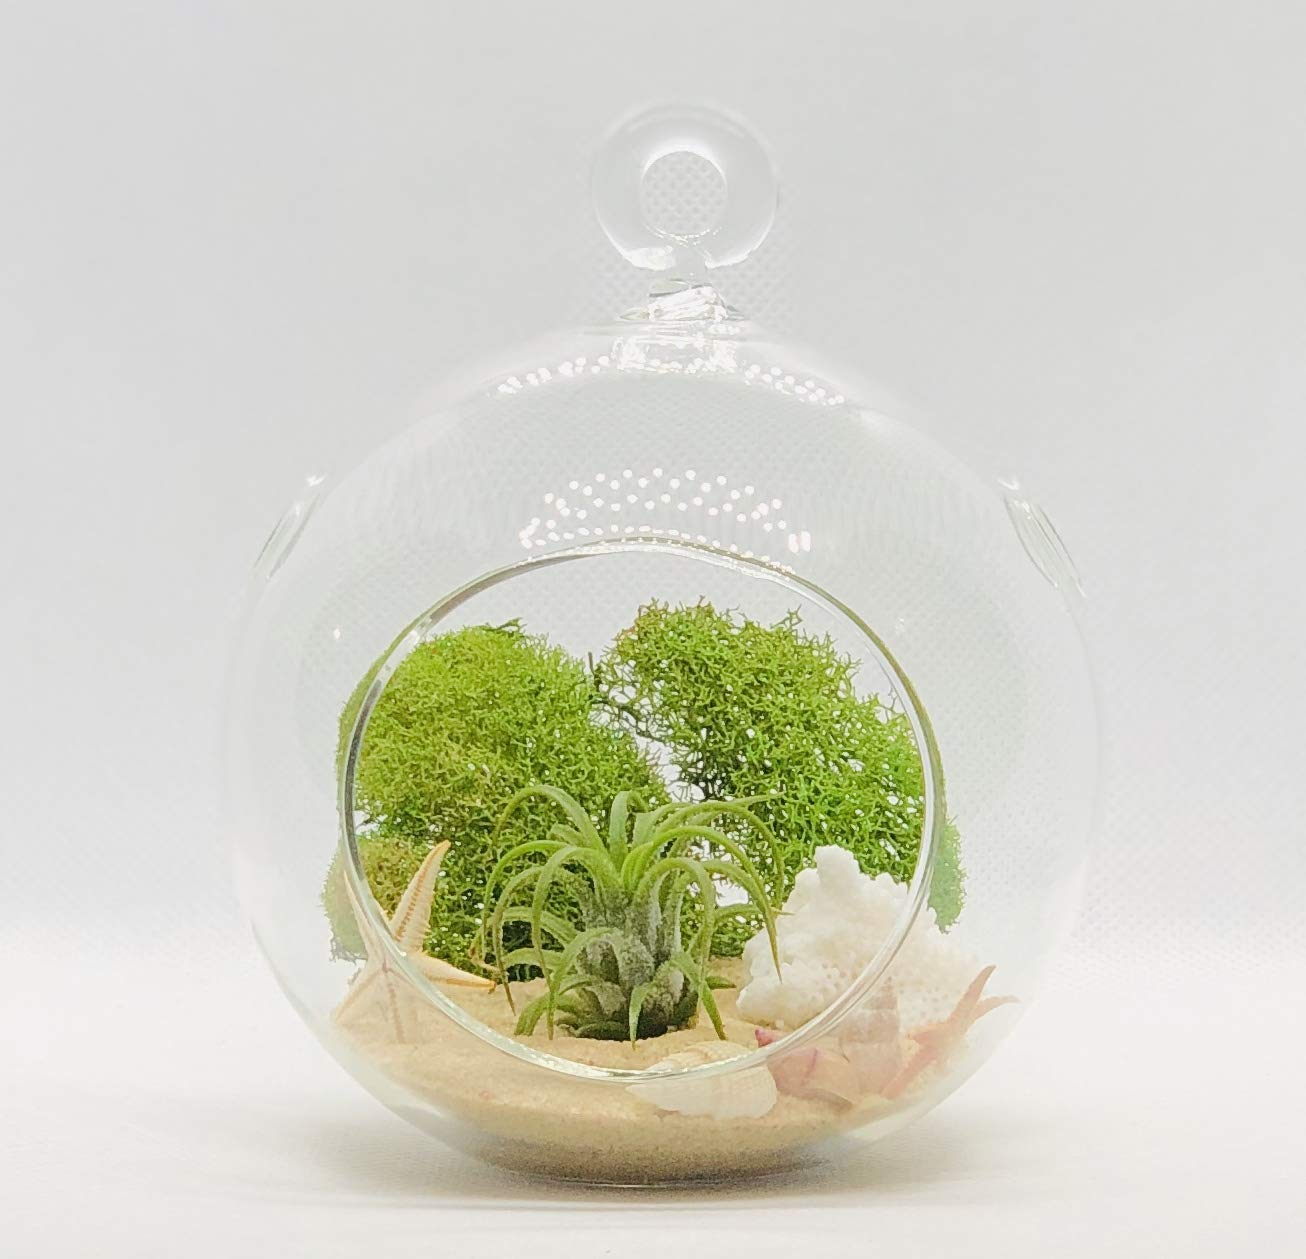 Airplant Beach Decorated Includes Glass Terrarium, Airplant, Natural Sand,Coral, Starfish, Green Moss, sea Shell